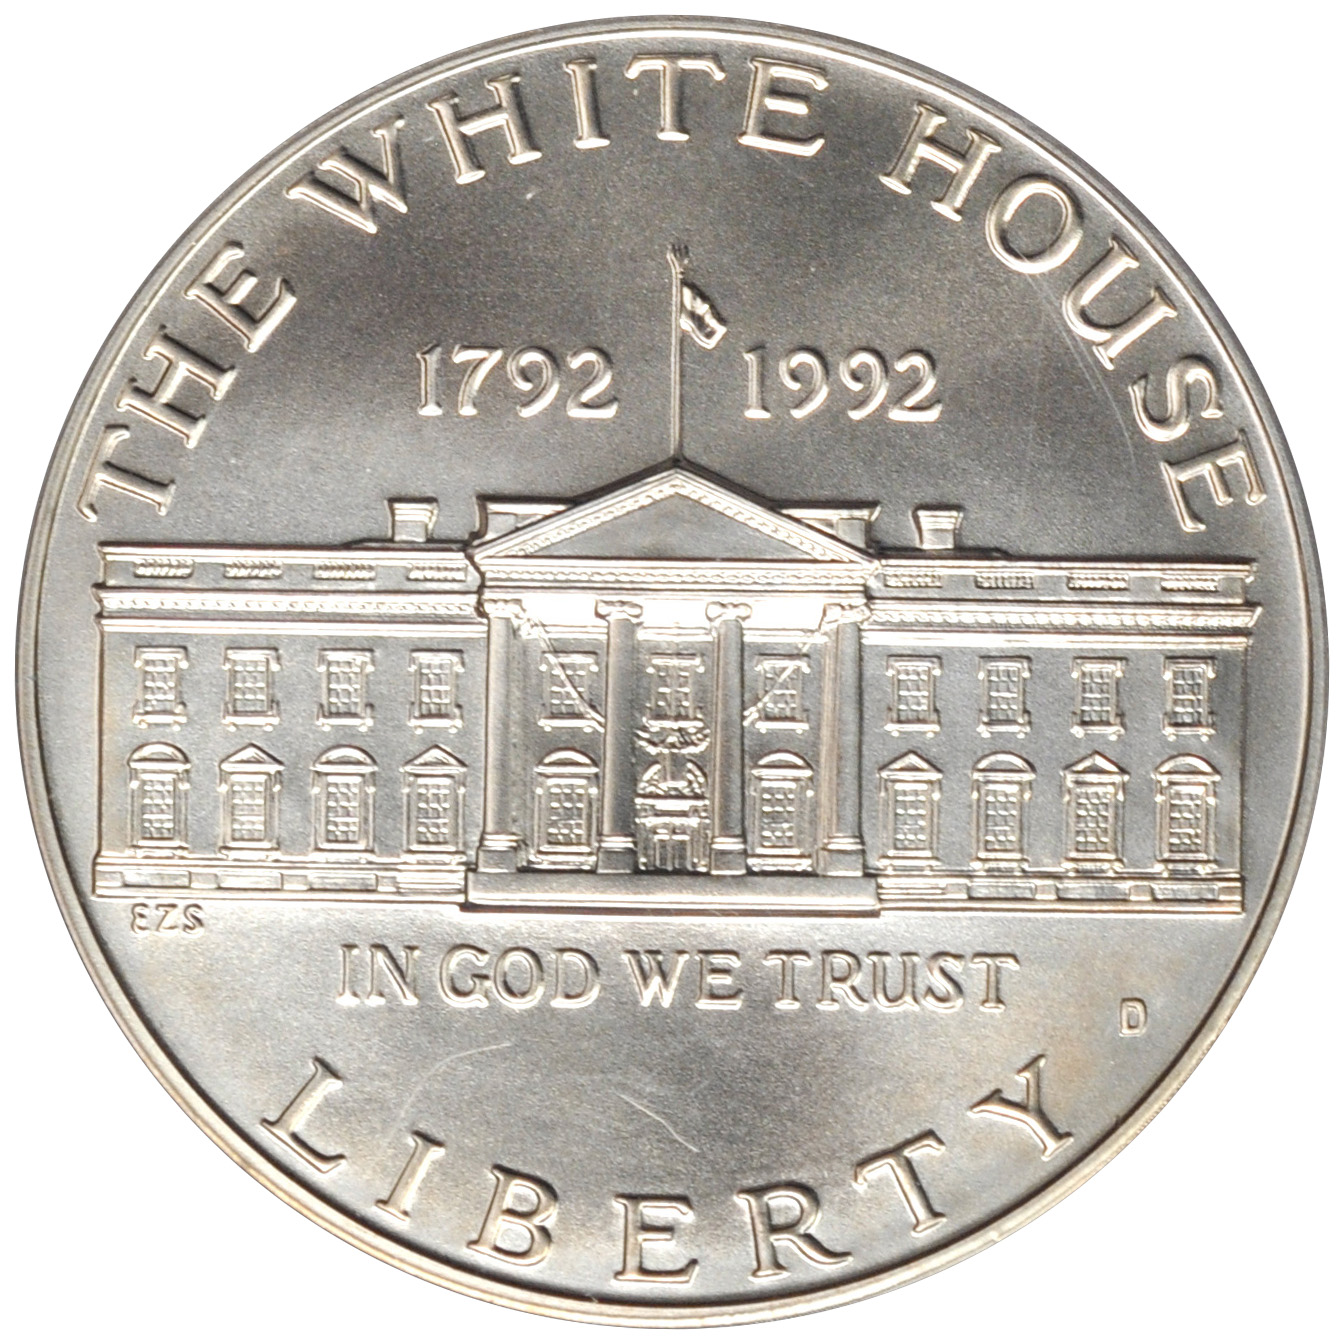 Value Of 1992 1 White House Silver Coin Sell Silver Coins